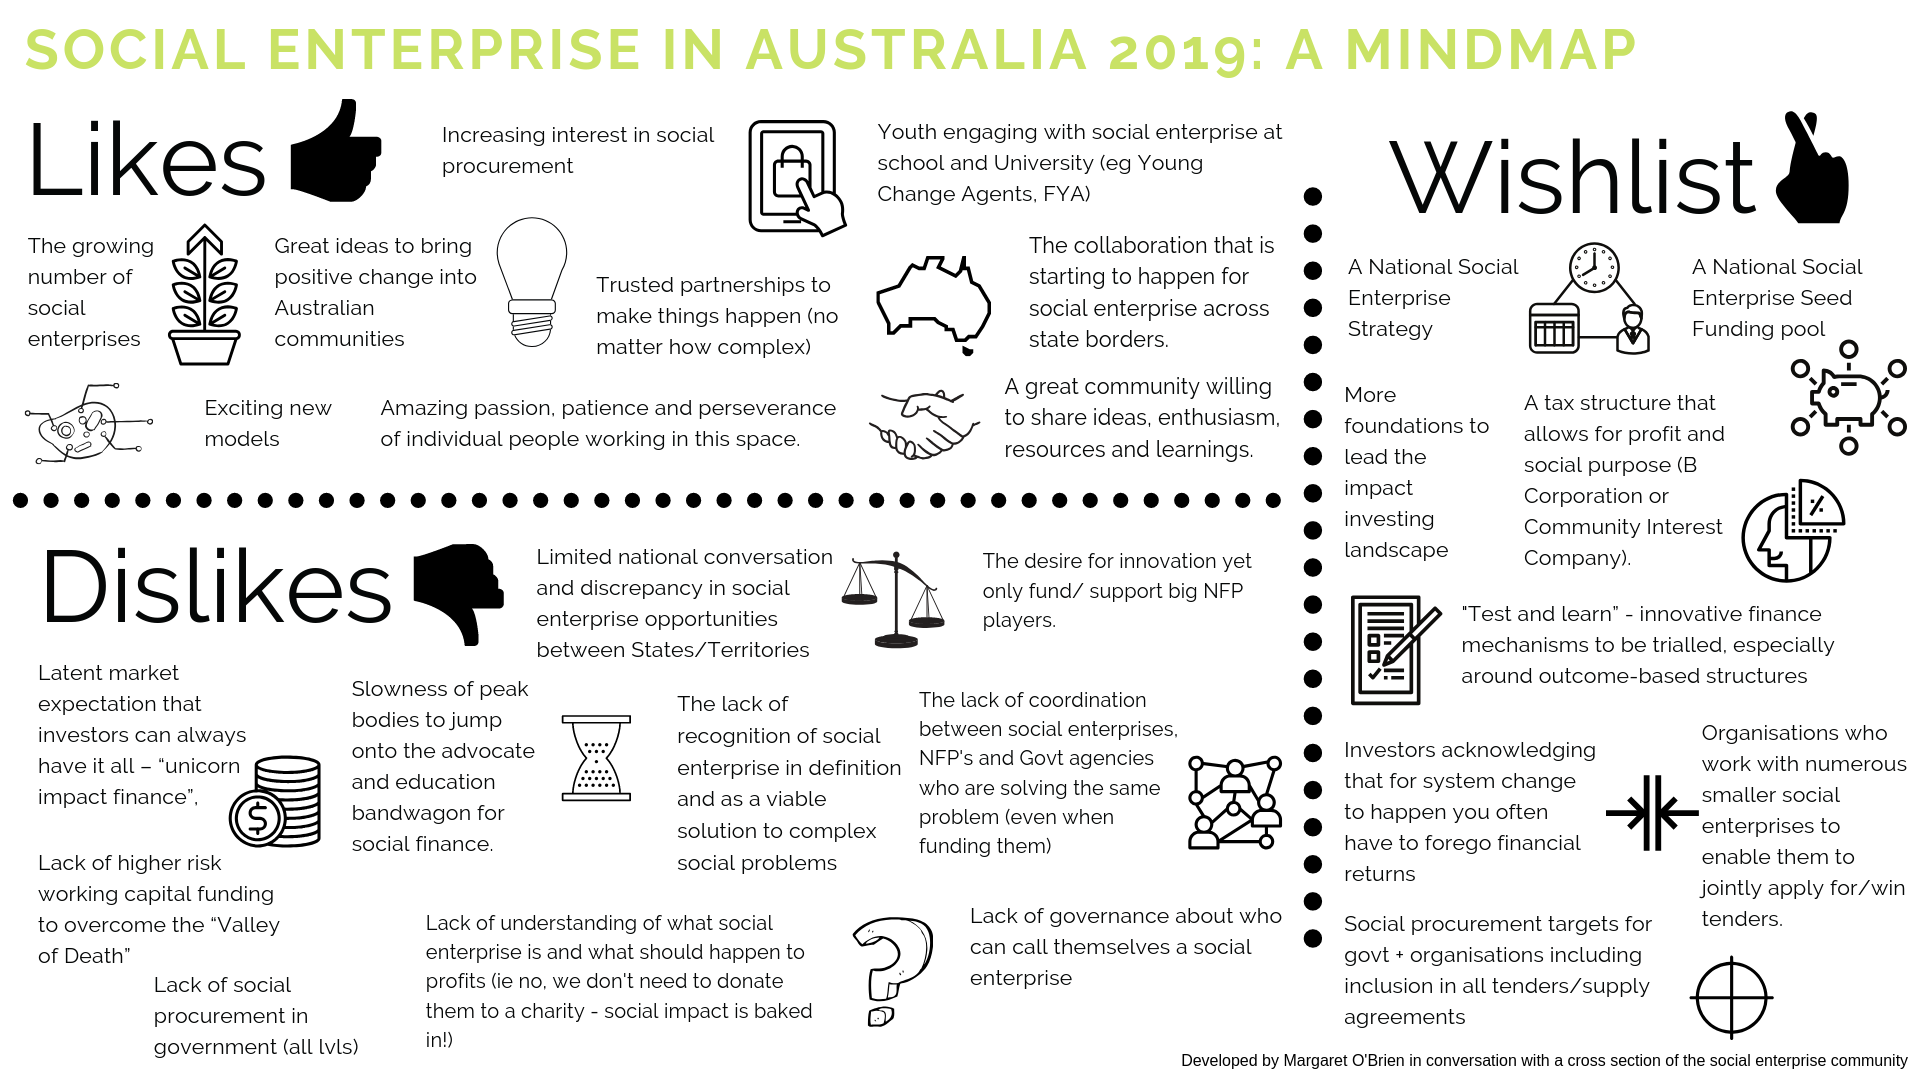 Social enterprise in Australia 2019 Mindmap